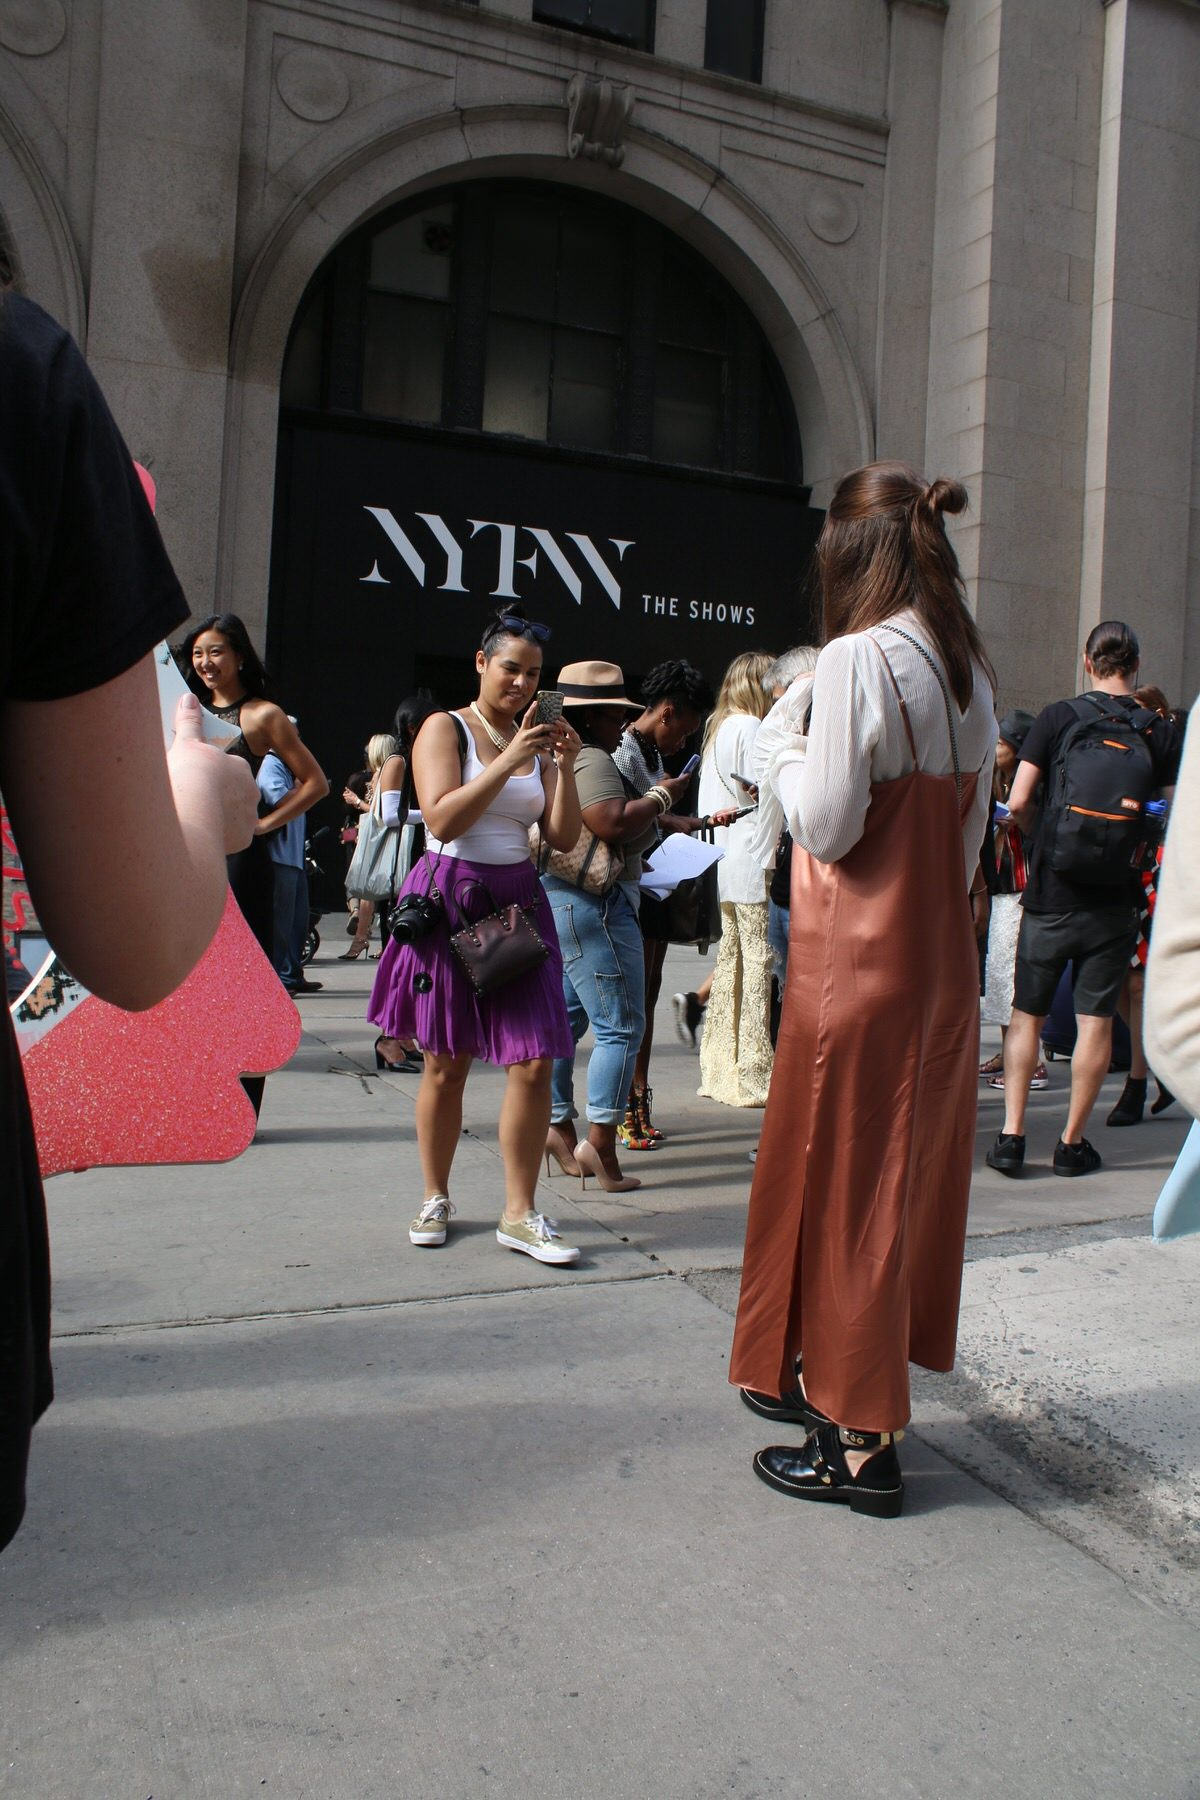 nyfw_ss17_streetstyle_veroniquesophie_2